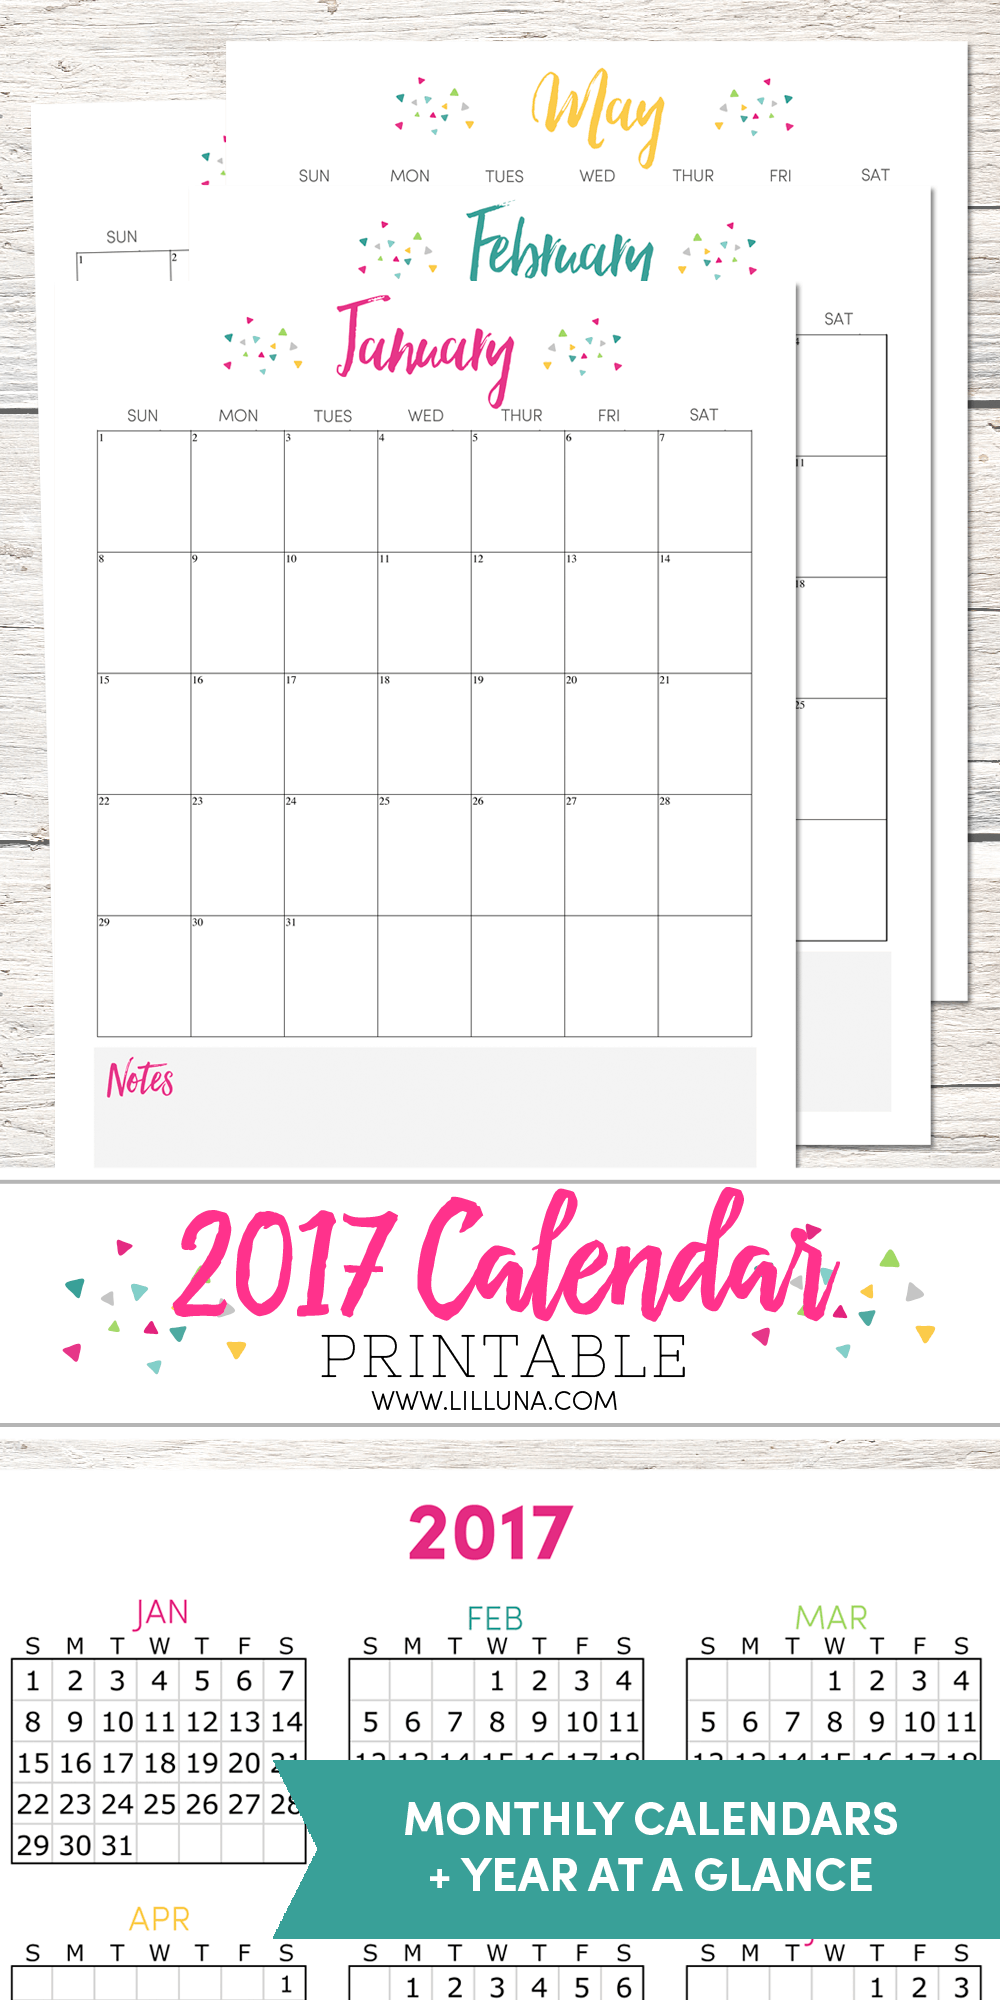 FREE 2017 Calendar - even has a NOTES section on the bottom to help you be organized in the new year.